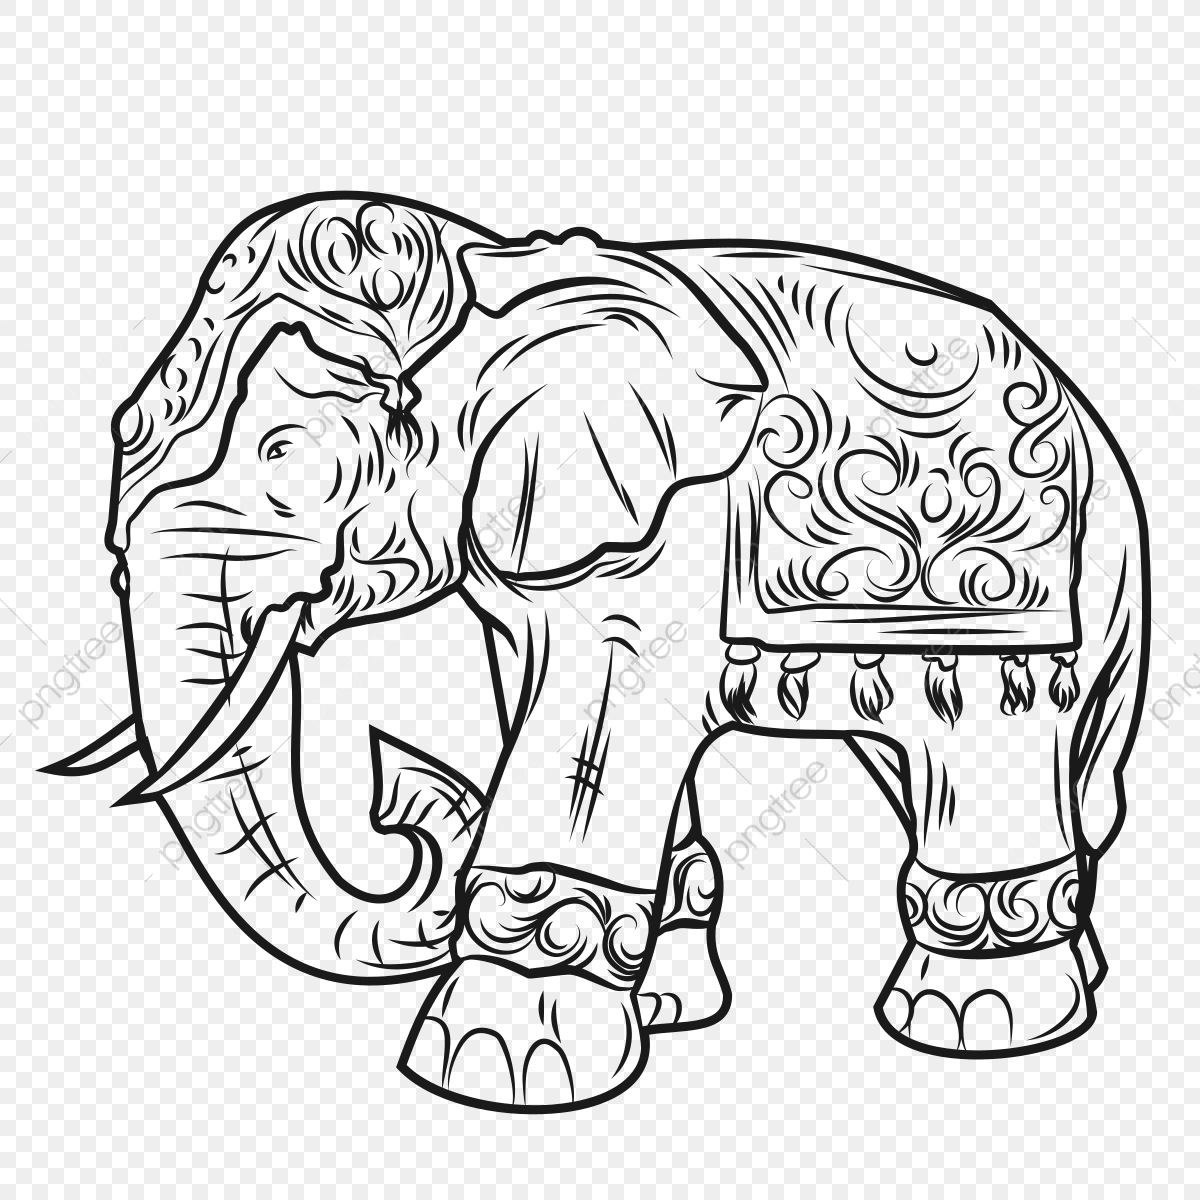 White Elephant Png Images Vector And Psd Files Free Download On Pngtree Find & download free graphic resources for elephant. https pngtree com freepng elephant elephant white elephant 3691585 html